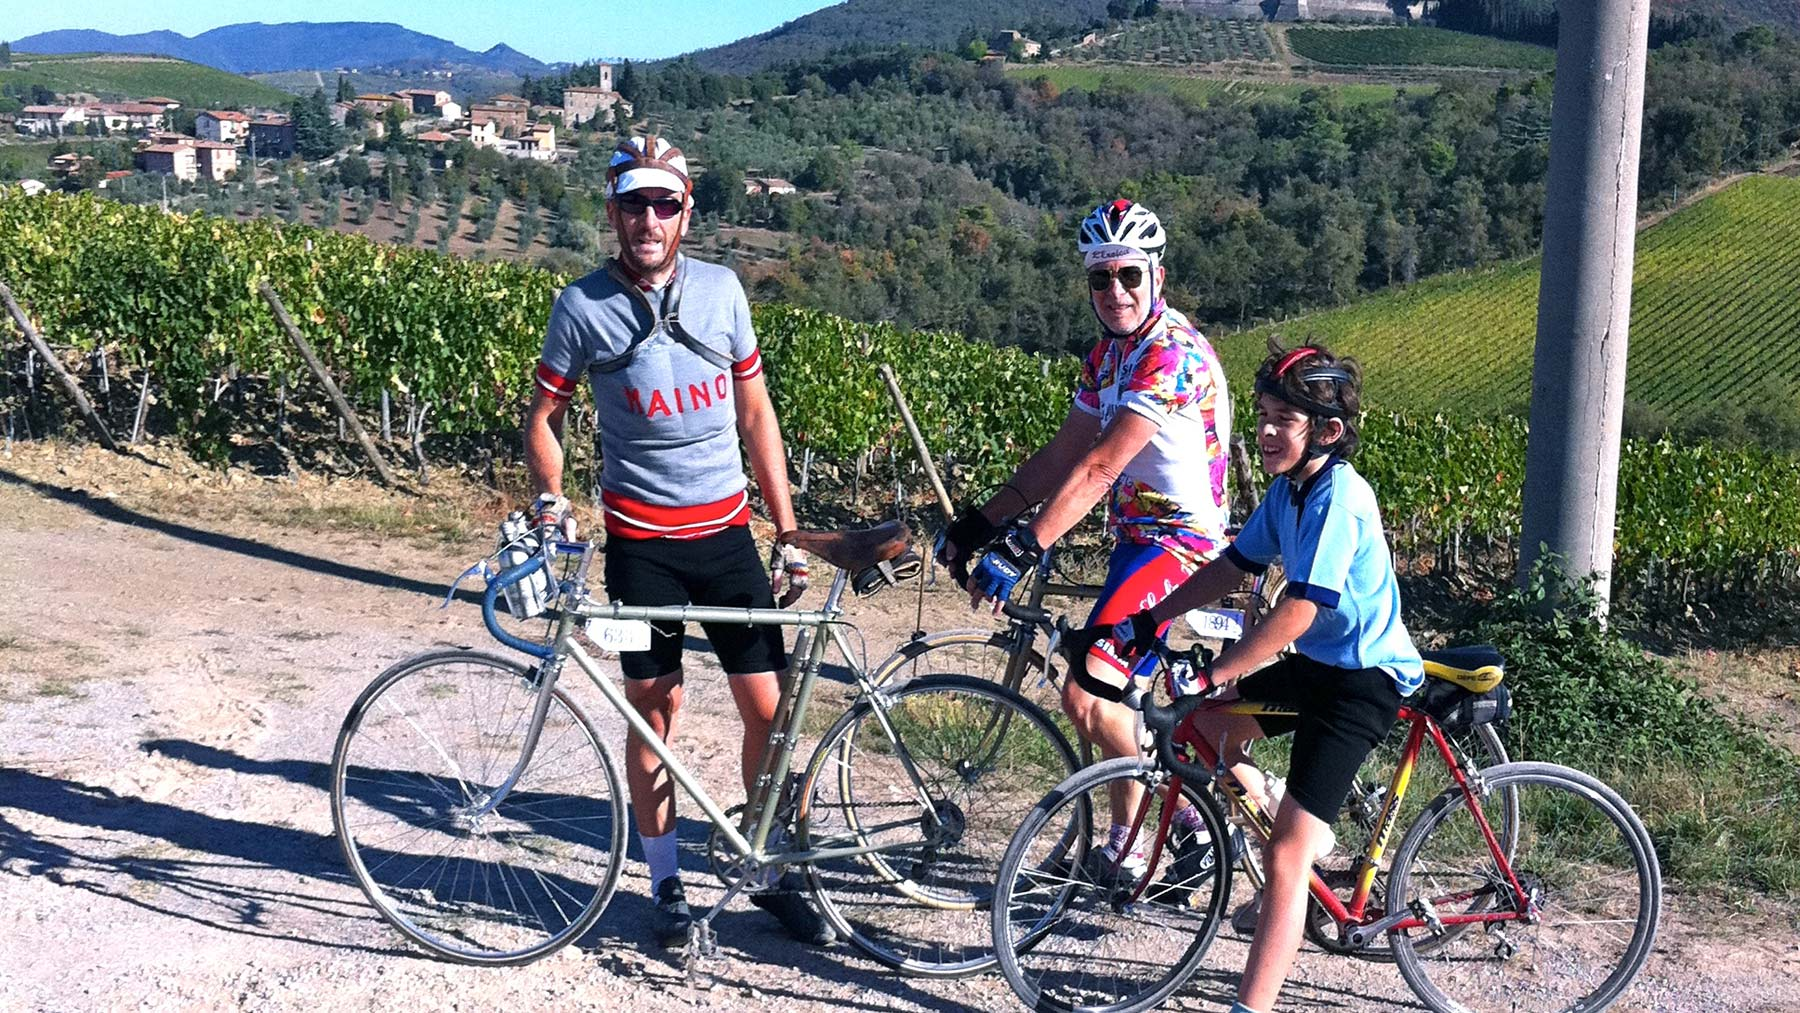 ANYONE WITH TWO WHEELS - Farm Holiday Il Molinello